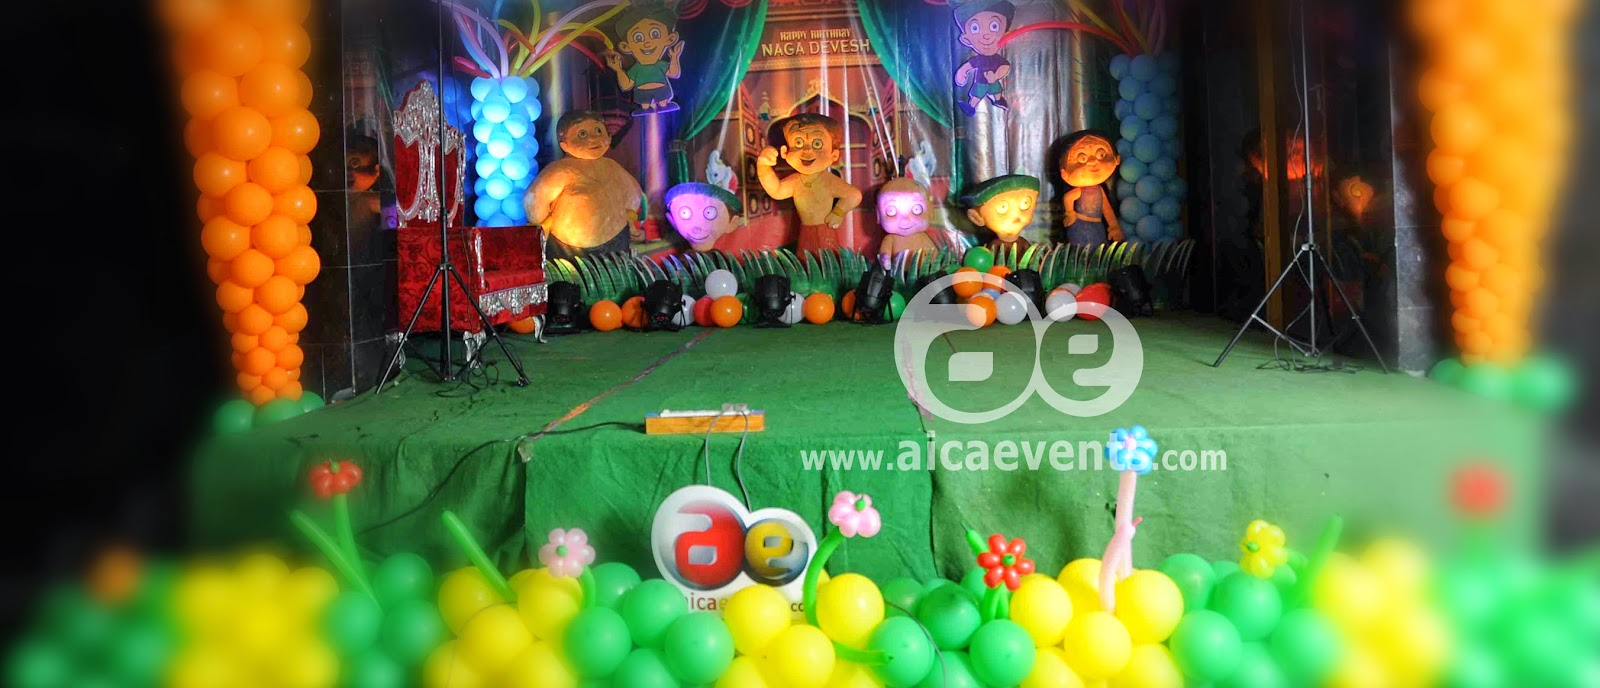 Aicaevents India Chhota Bheem Theme Decorations